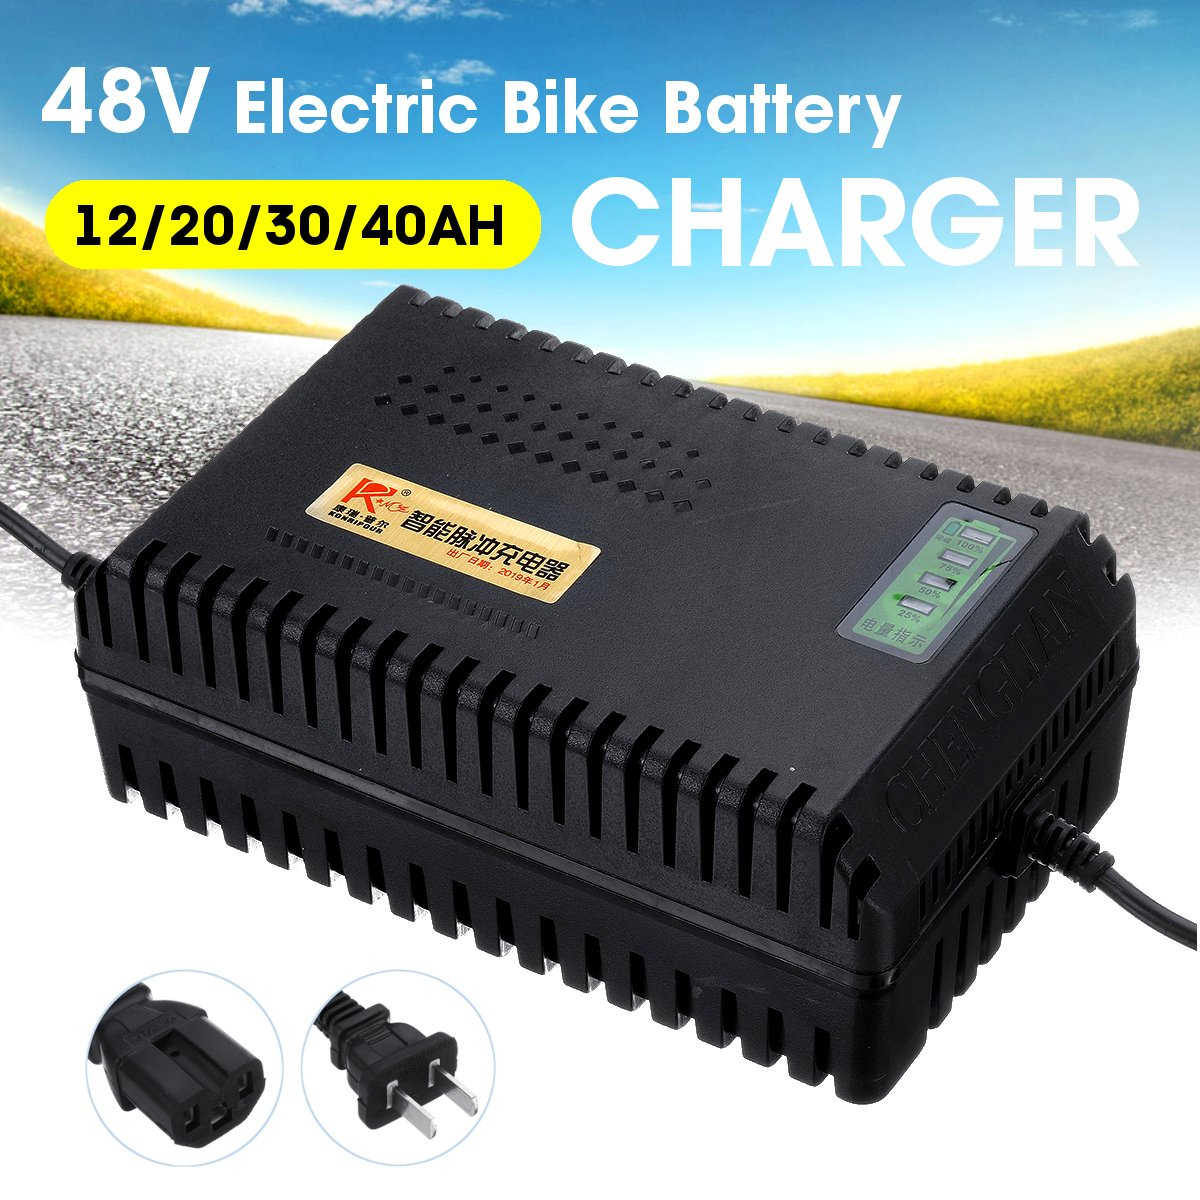 Lead-Acid-Battery-Charger Chargers Scooter Bike Electric-Bike for 48V 30ah/40ah title=